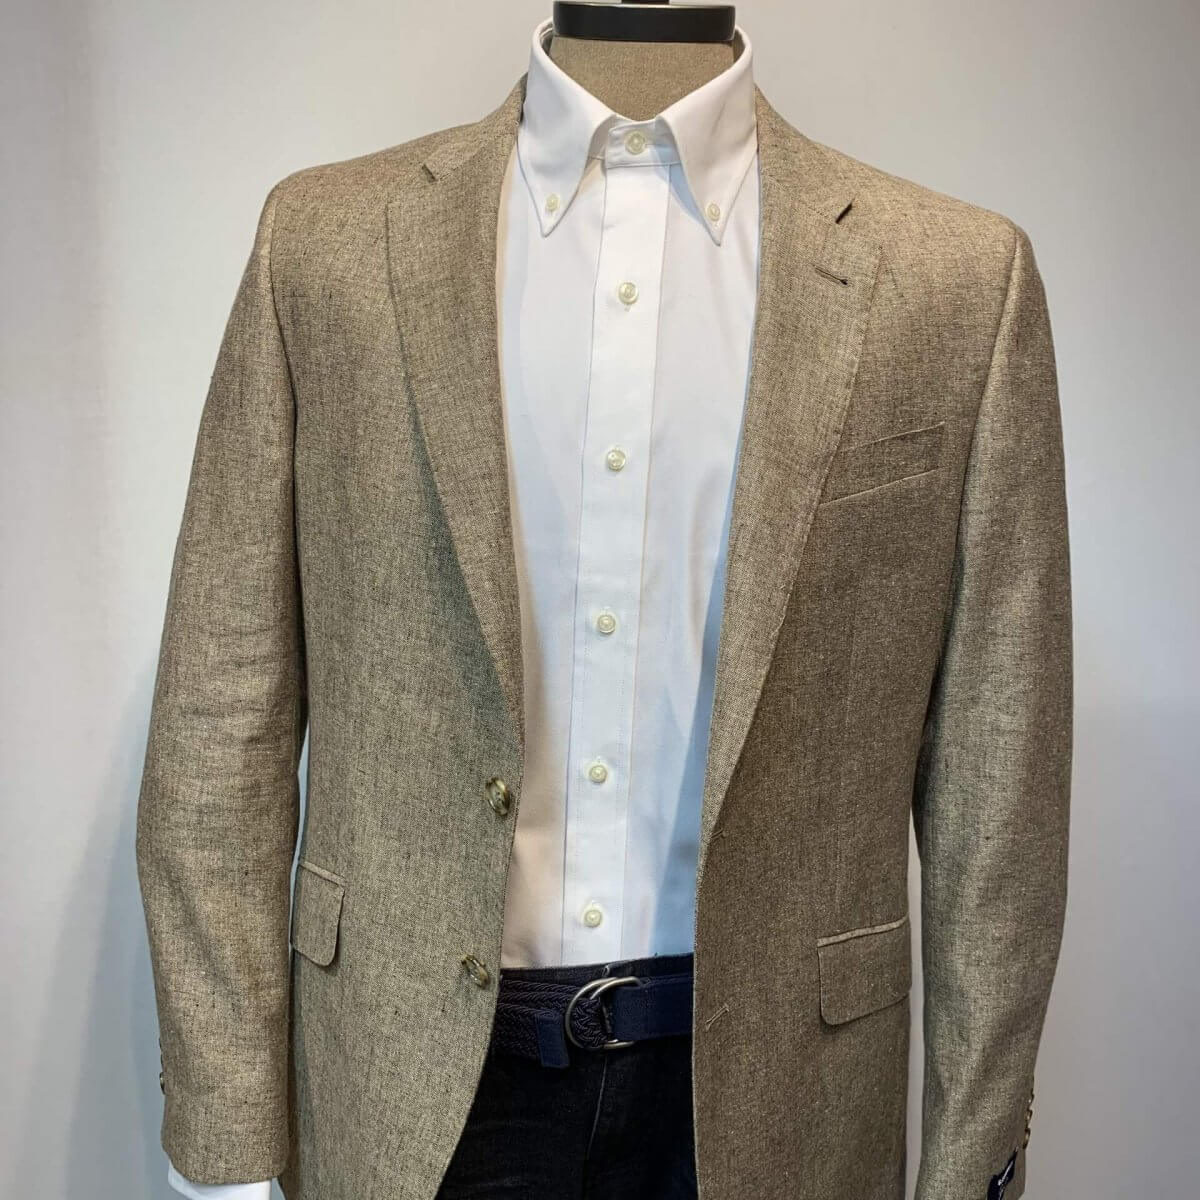 G. Connolly Blazer in Beige